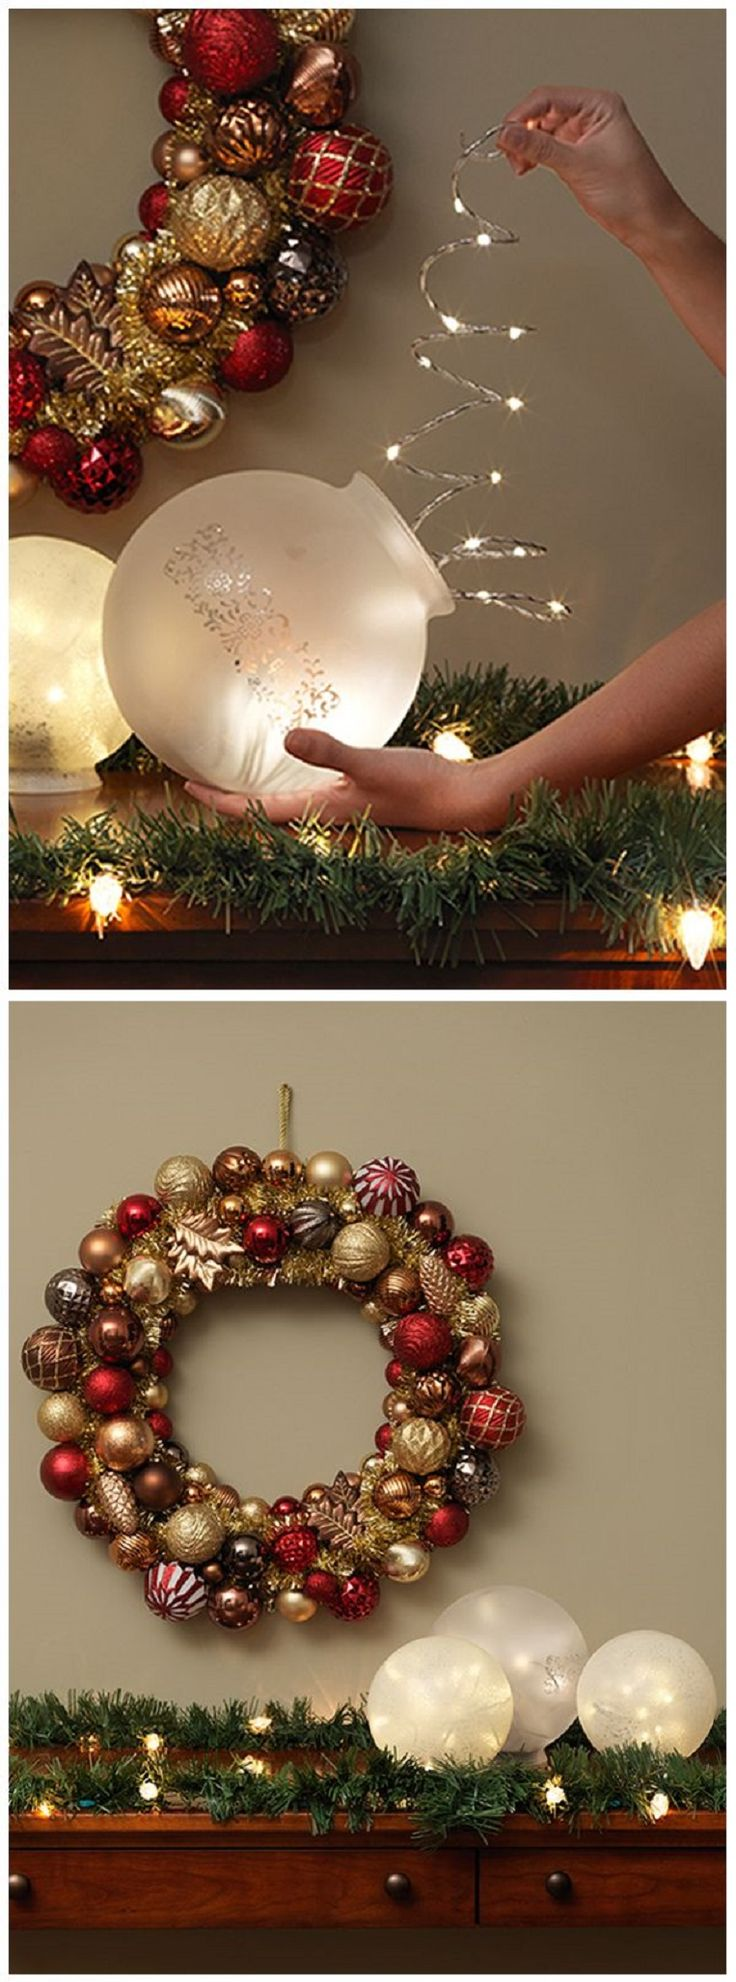 Luminous Christmas Decorations using ordinary light fixture globes and battery-powered LED lights